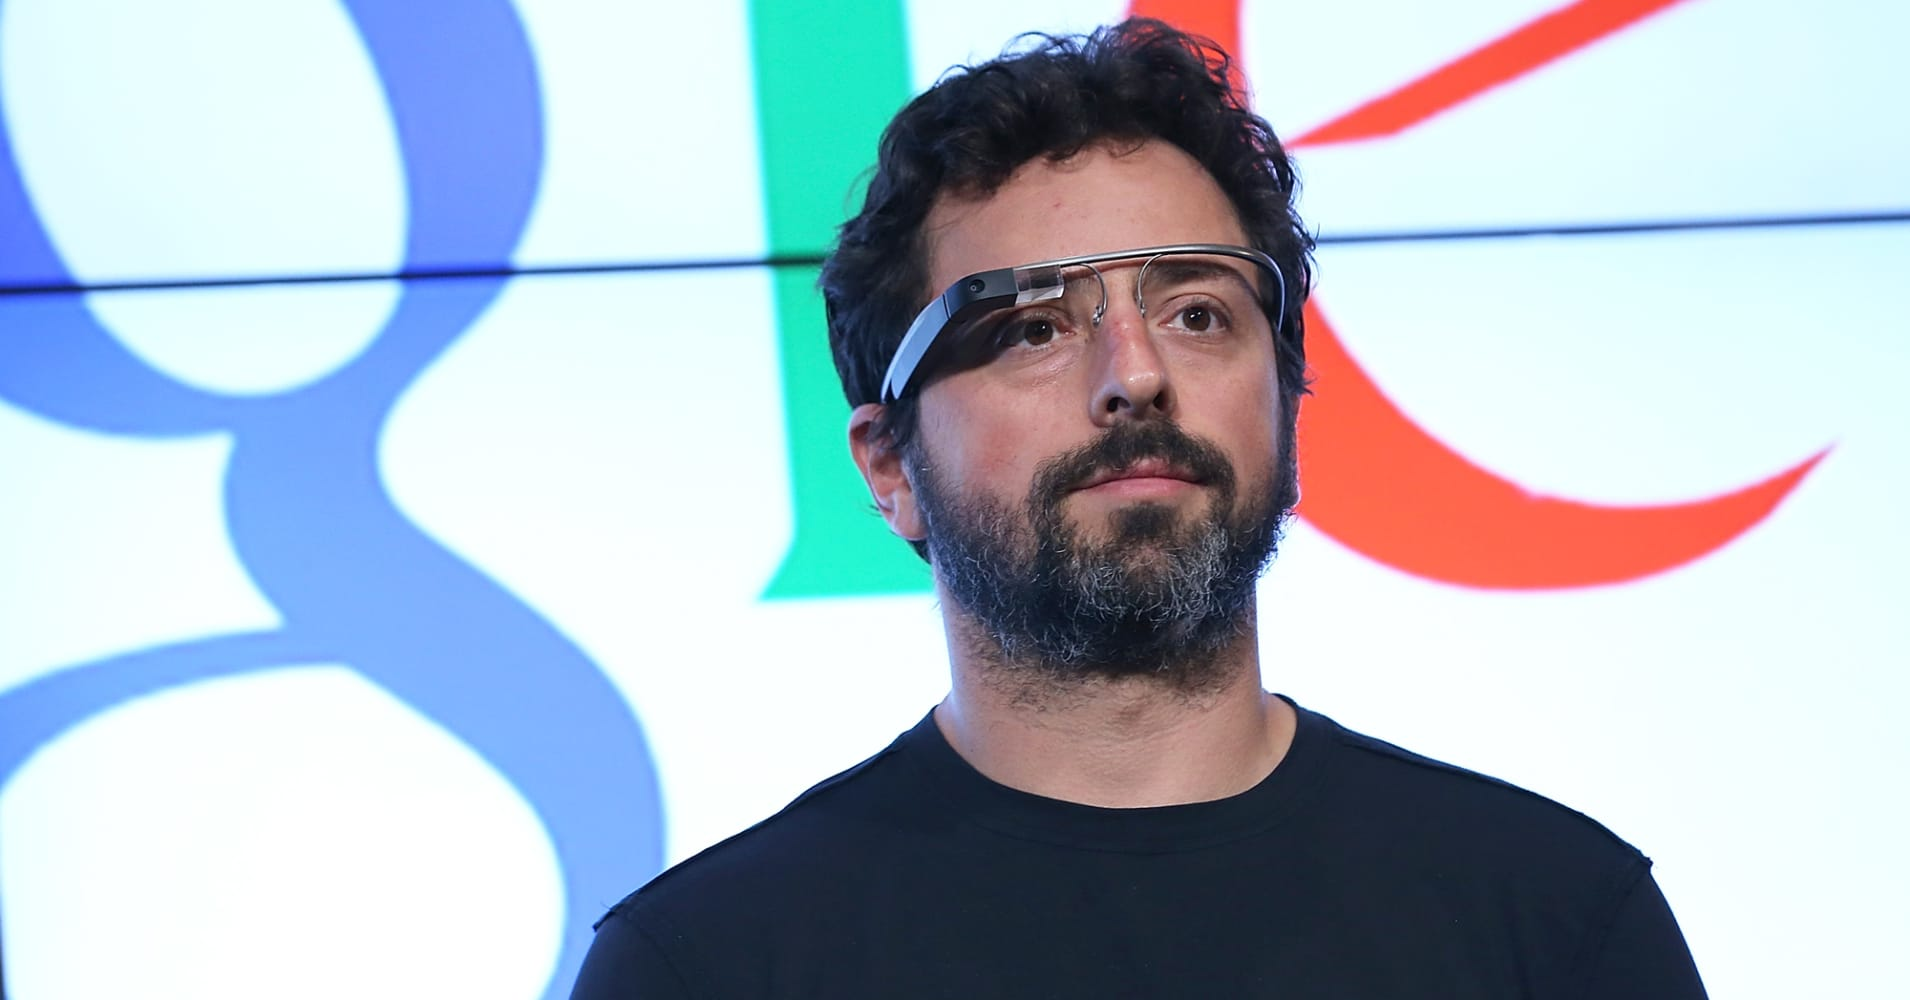 The National Foundation for American Policy found that immigrants have started more than half of the U.S.'s billion-dollar start-up companies. One example is Google co-founder Sergey Brin, who emigrated from the former Soviet Union.